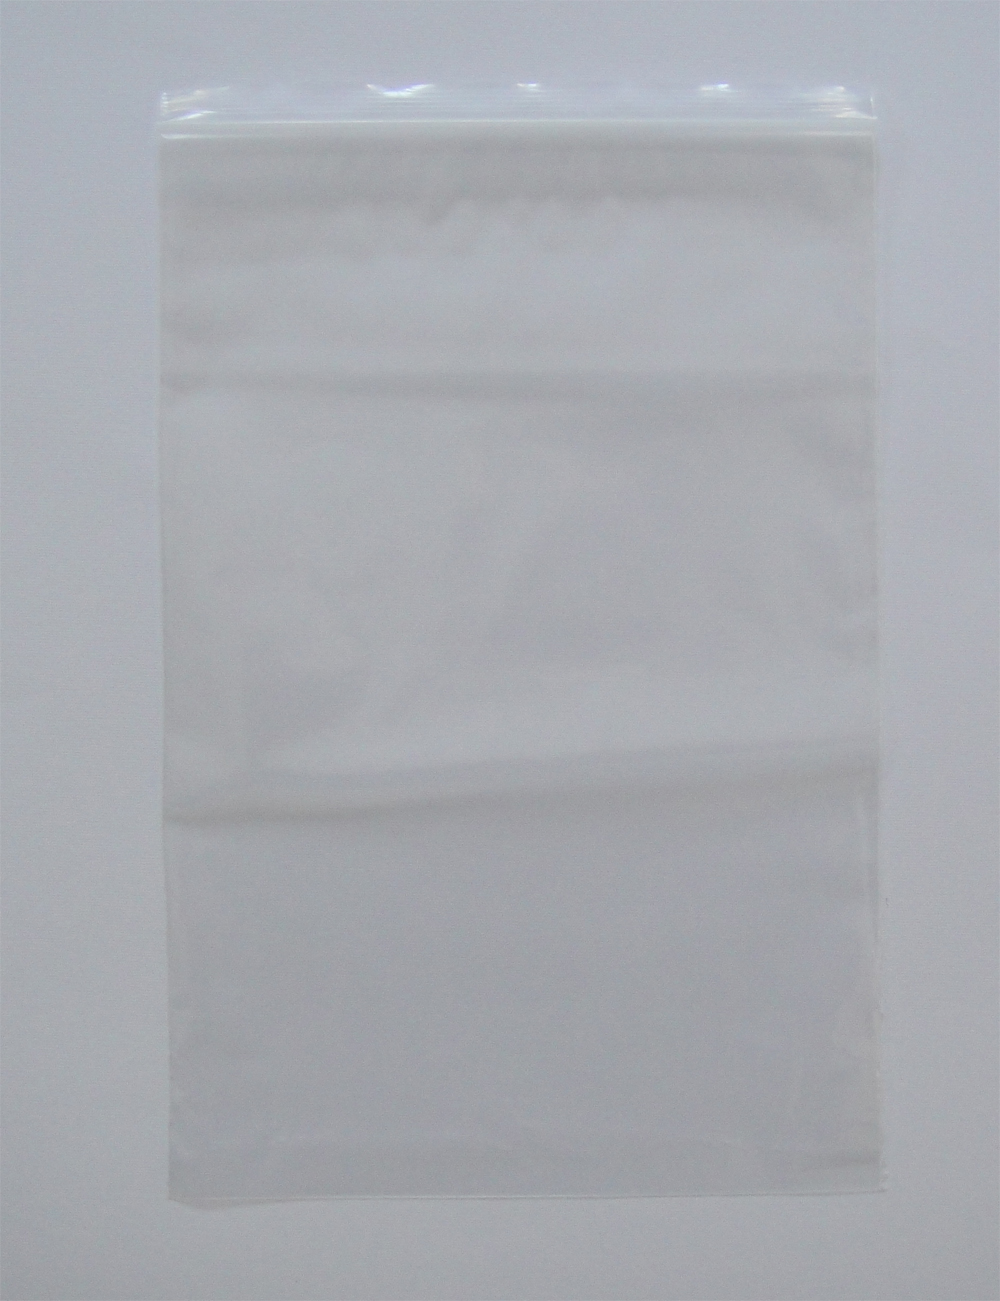 Garment Covers Direct Uk Plastic Clothes Covers Dry